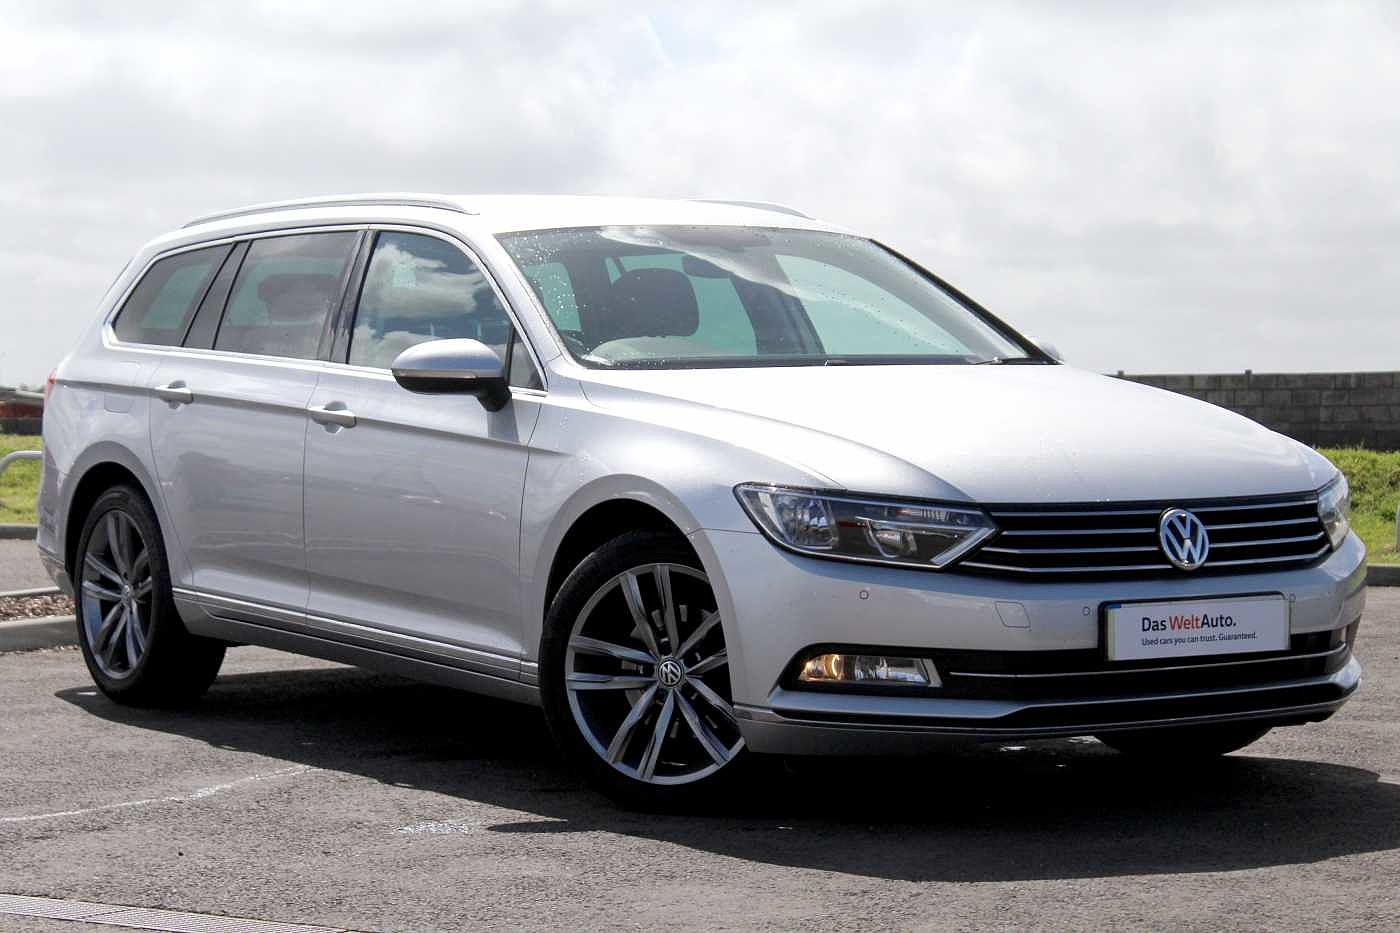 Volkswagen Passat 2.0 TDI GT 150PS Estate